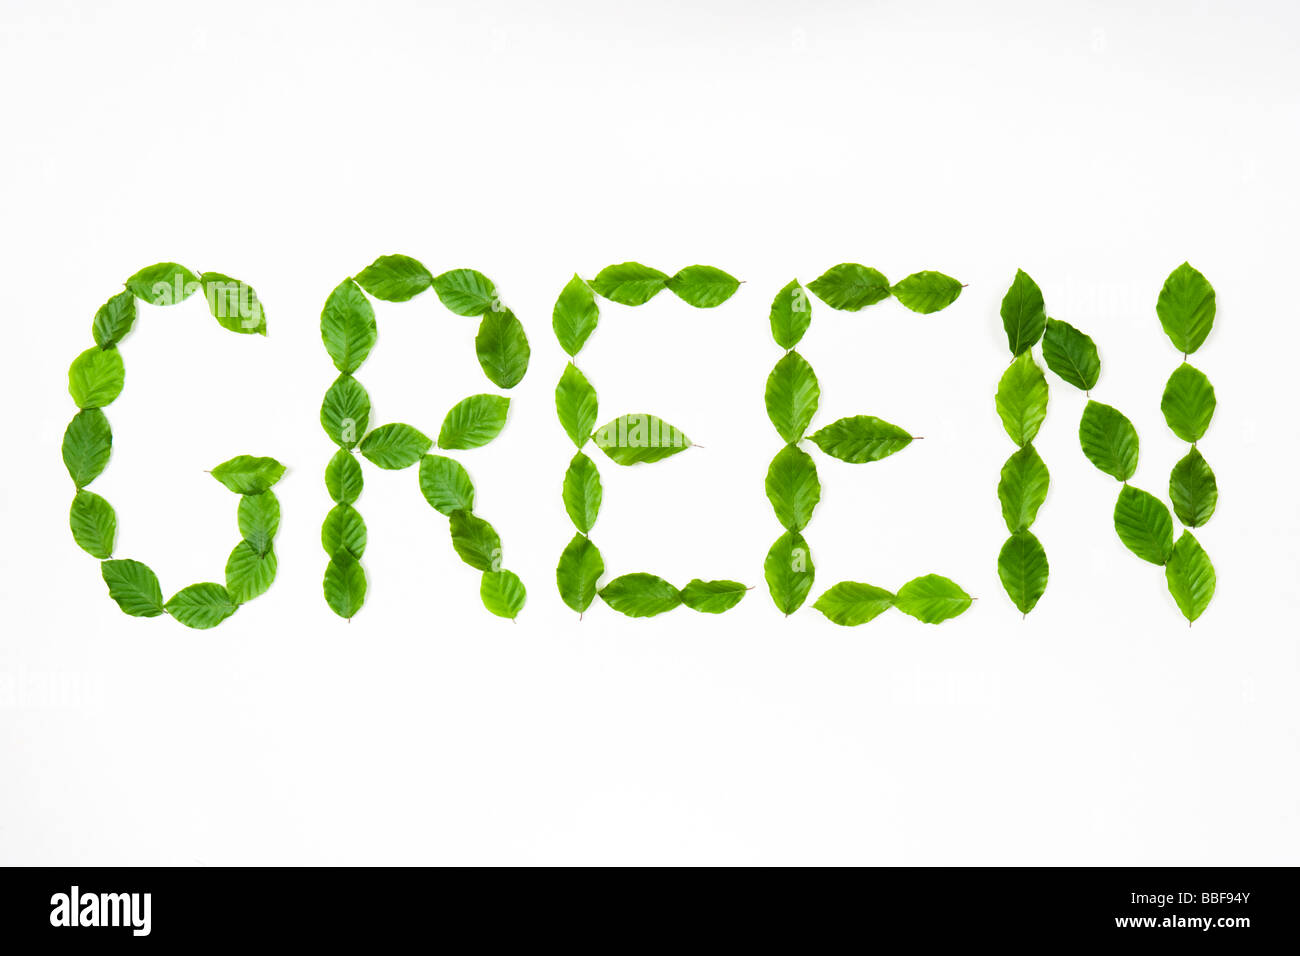 Word 'green' spelt out with leaves. Beech leaves. - Stock Image